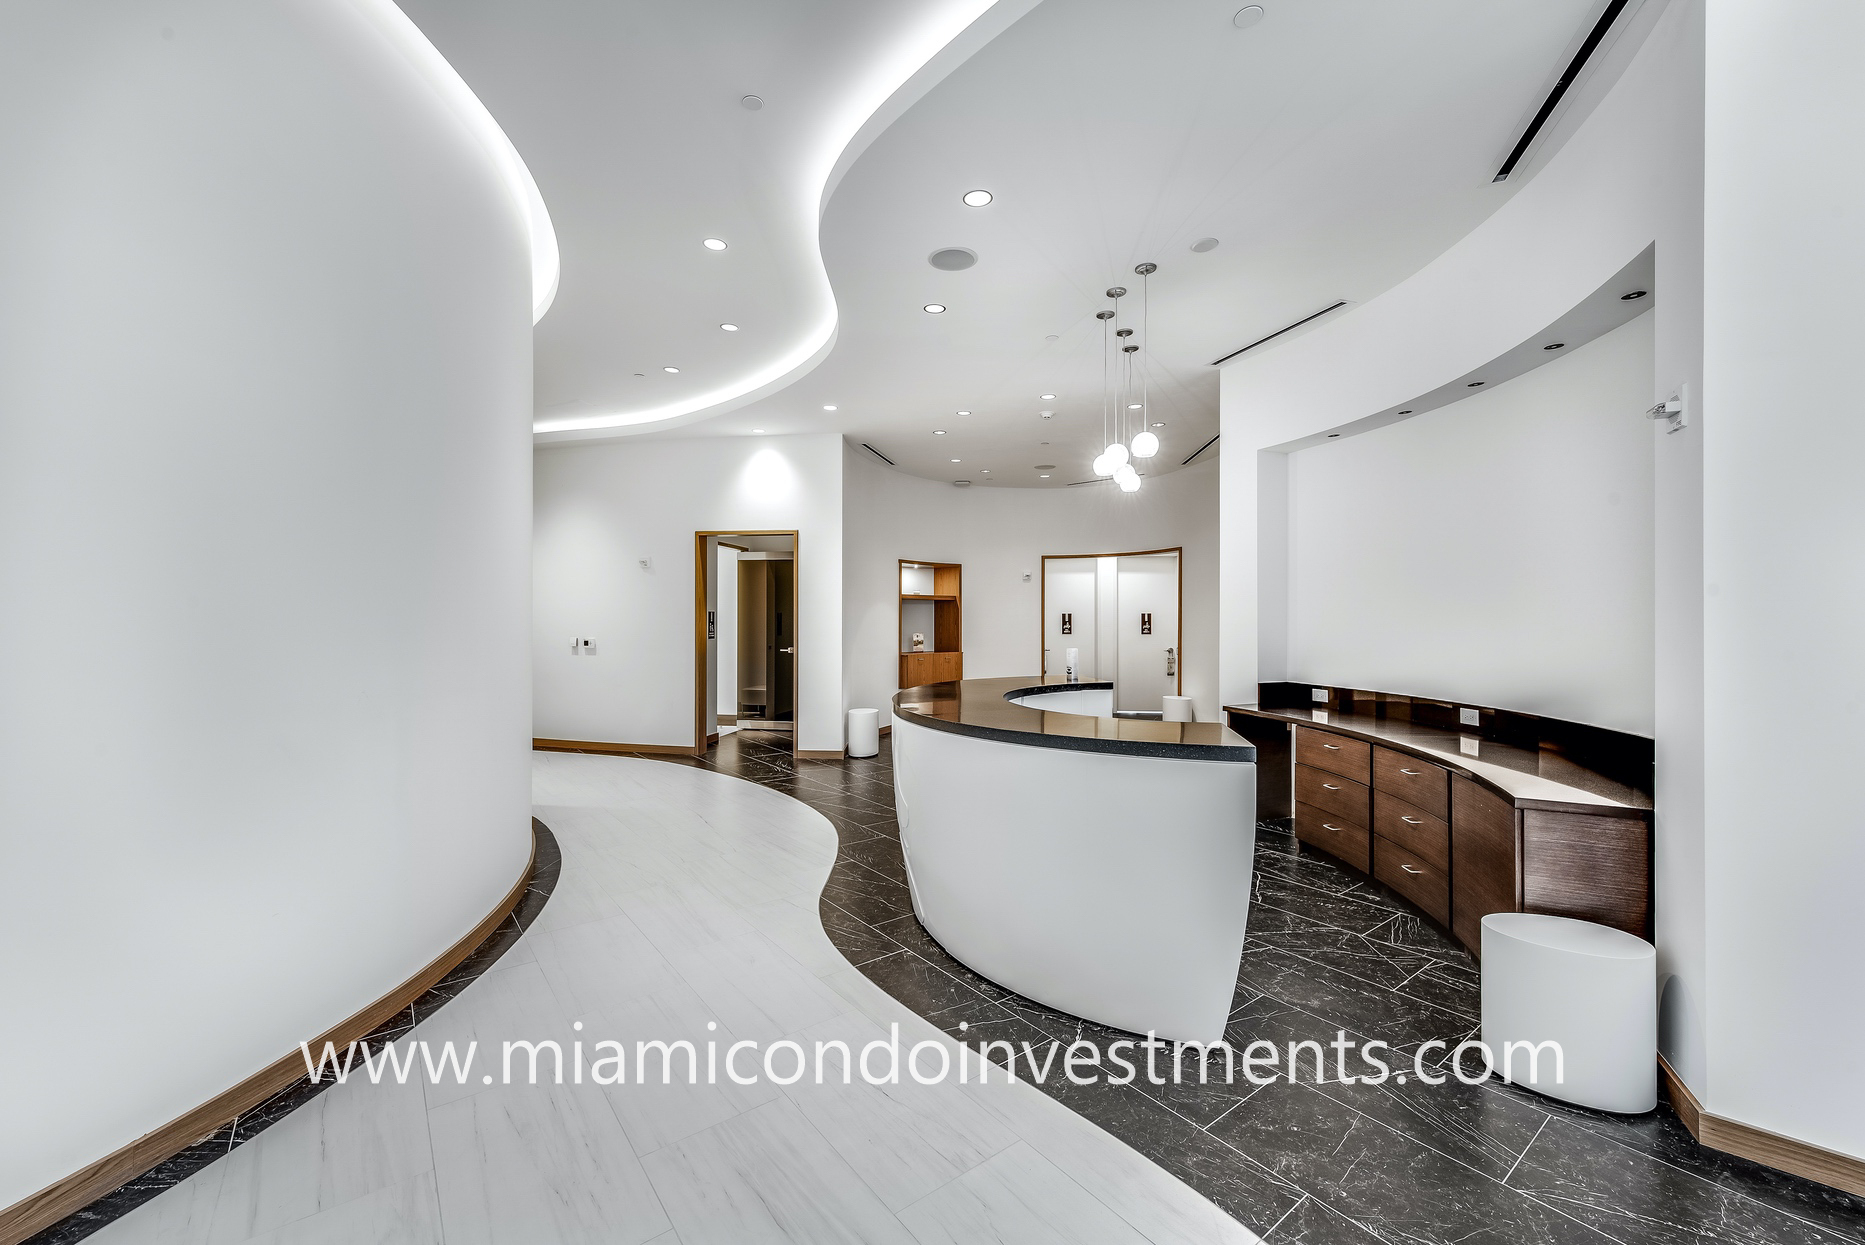 Paramount Miami spa reception desk